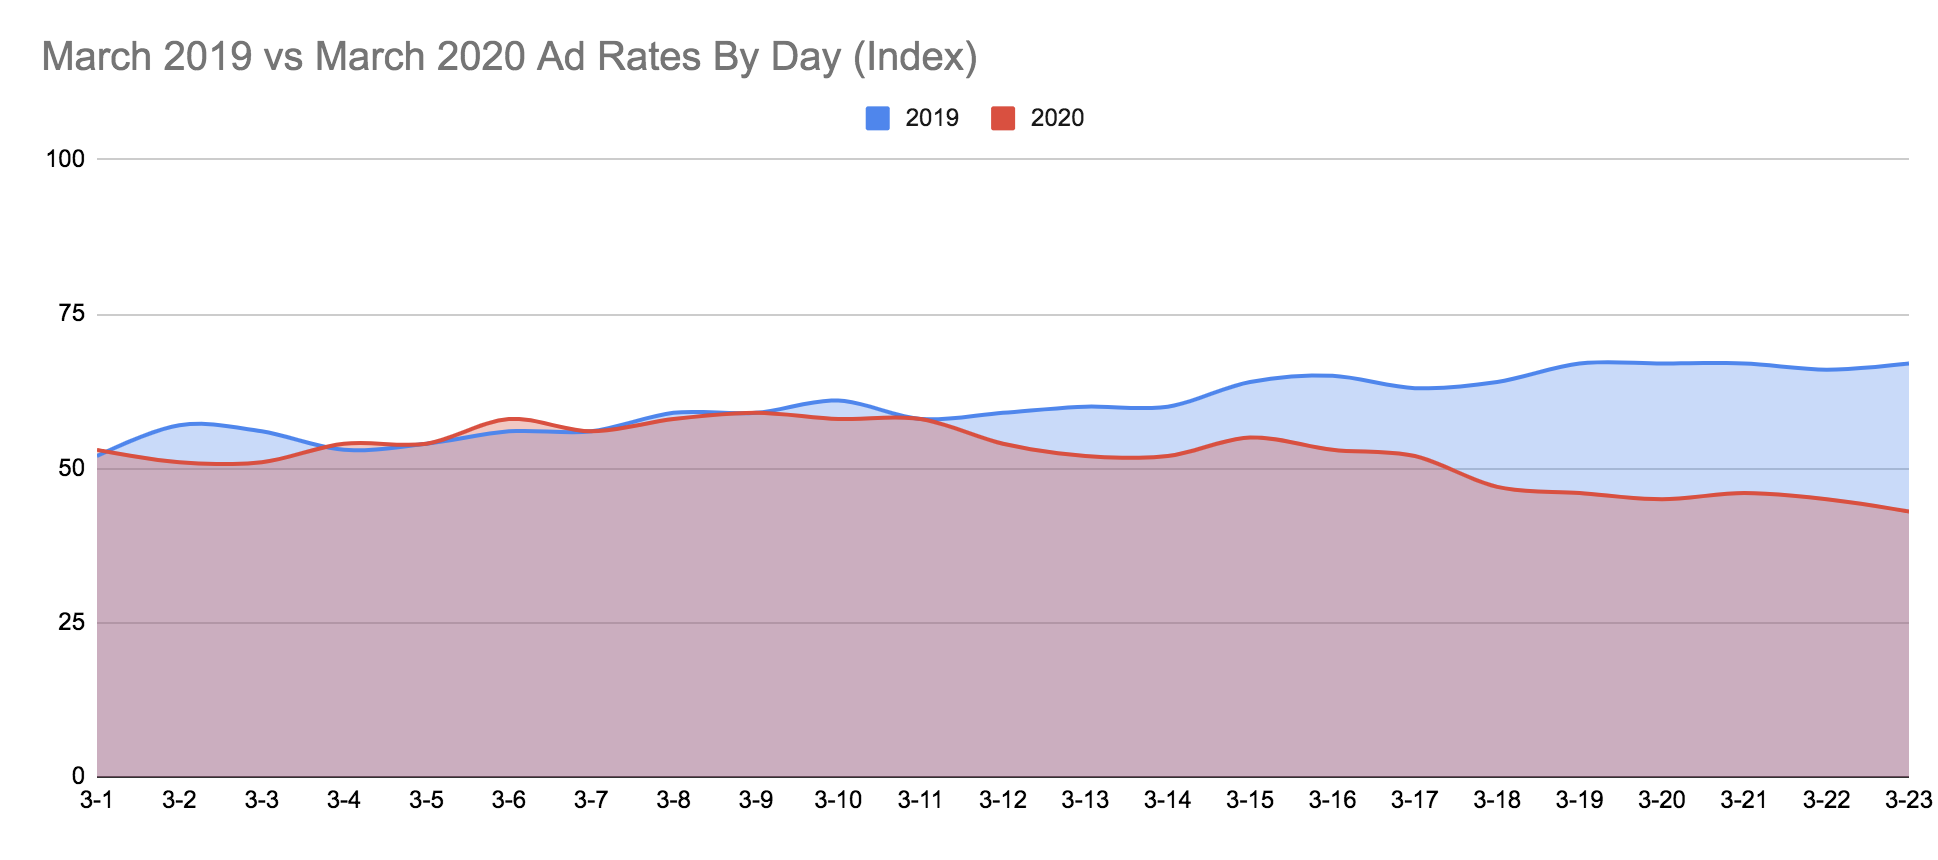 Impact of Coronavirus on Digital Publishing: March 2020 ad rates are slightly lower than March 2019 ad rates